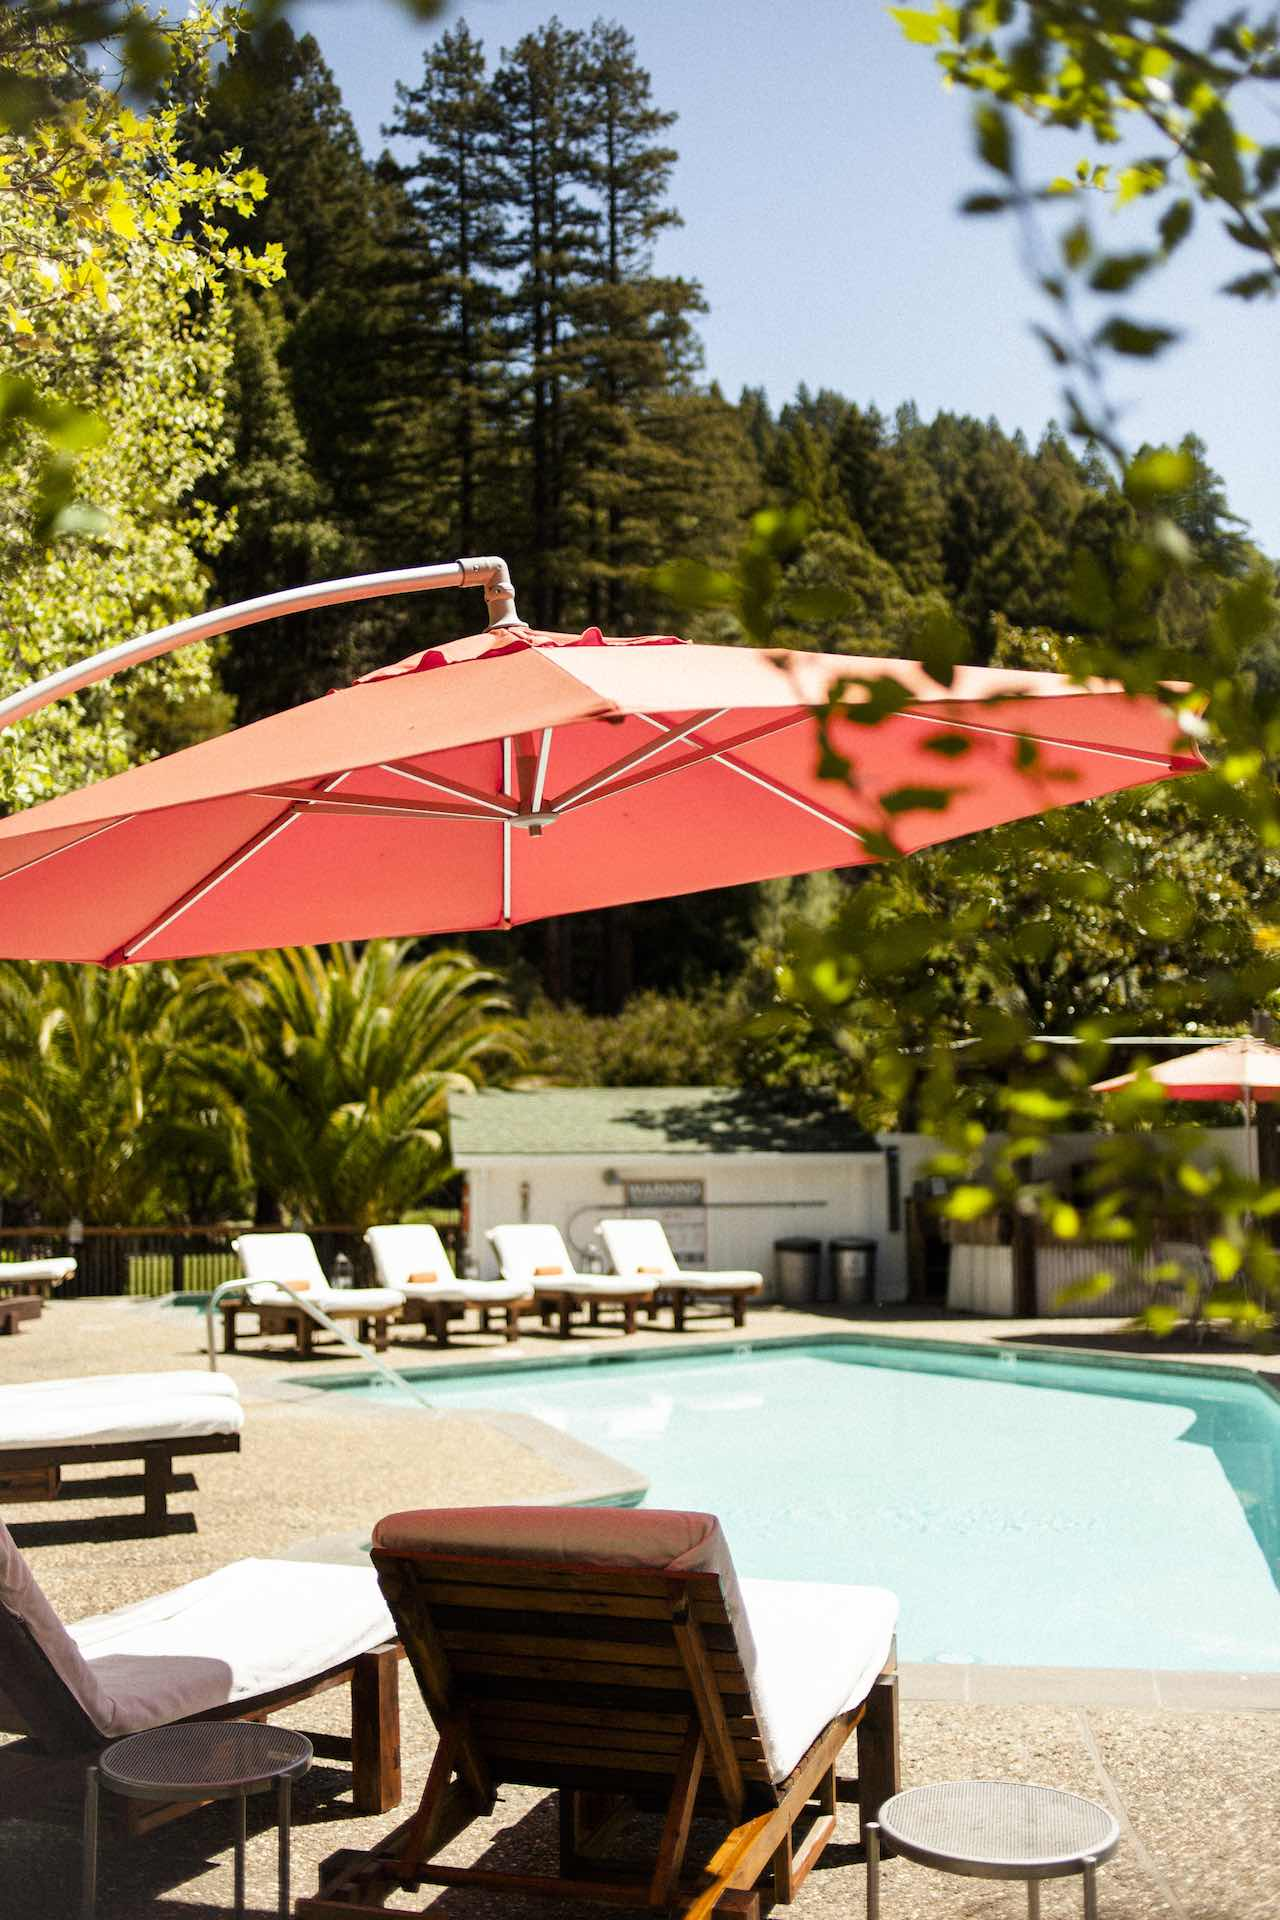 Boon Hotel and Spa Guerneville California Pool